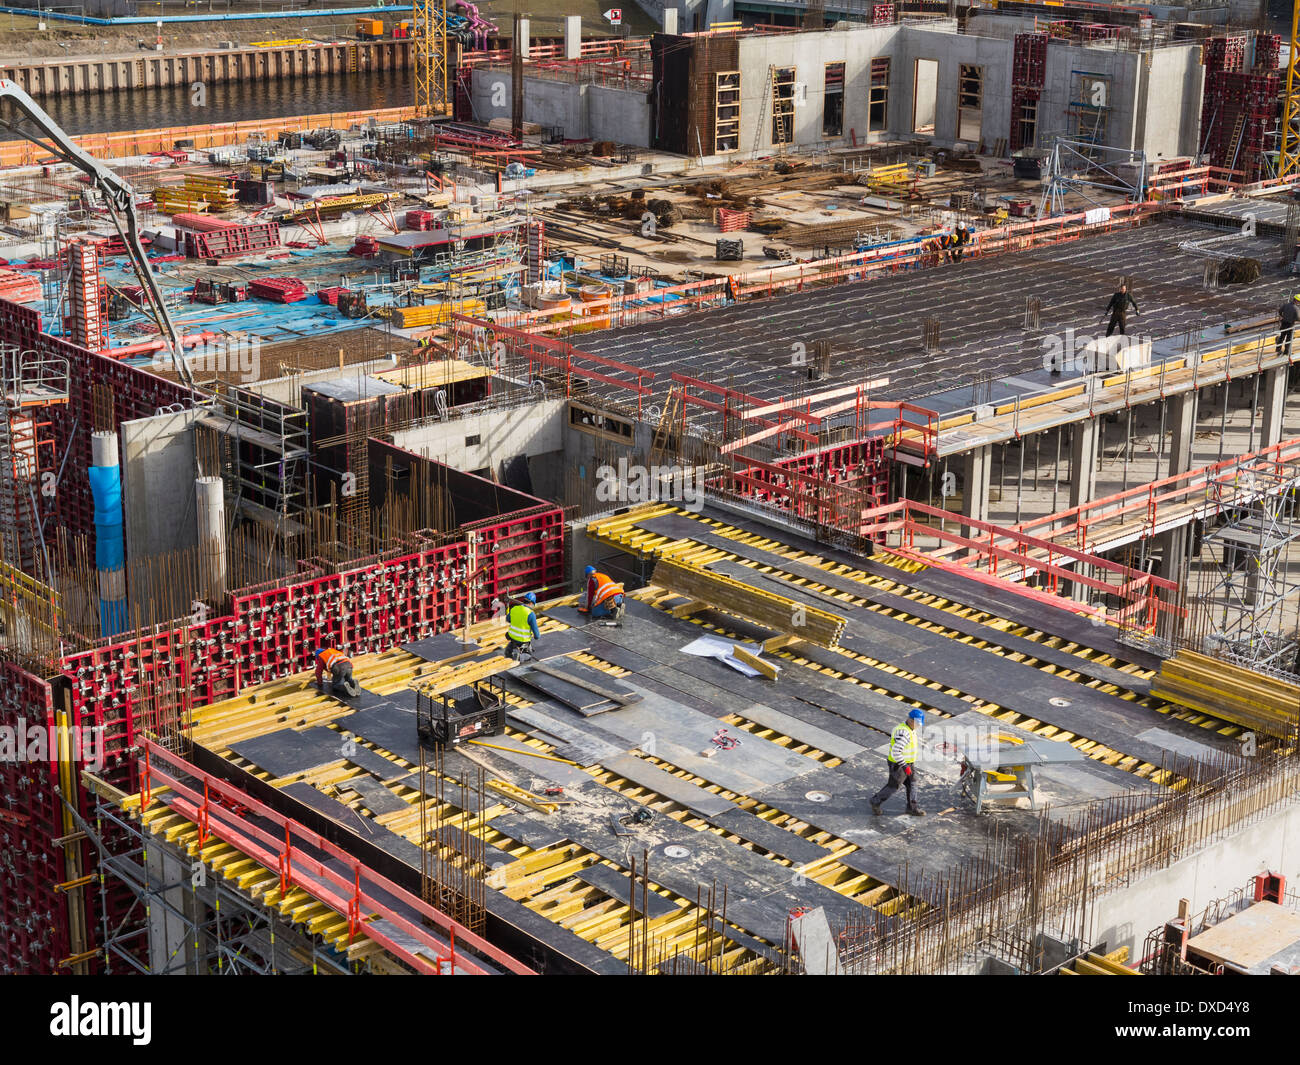 Construction site work on high-rise buildings on a building site in Berlin city centre, Germany, Europe - Stock Image